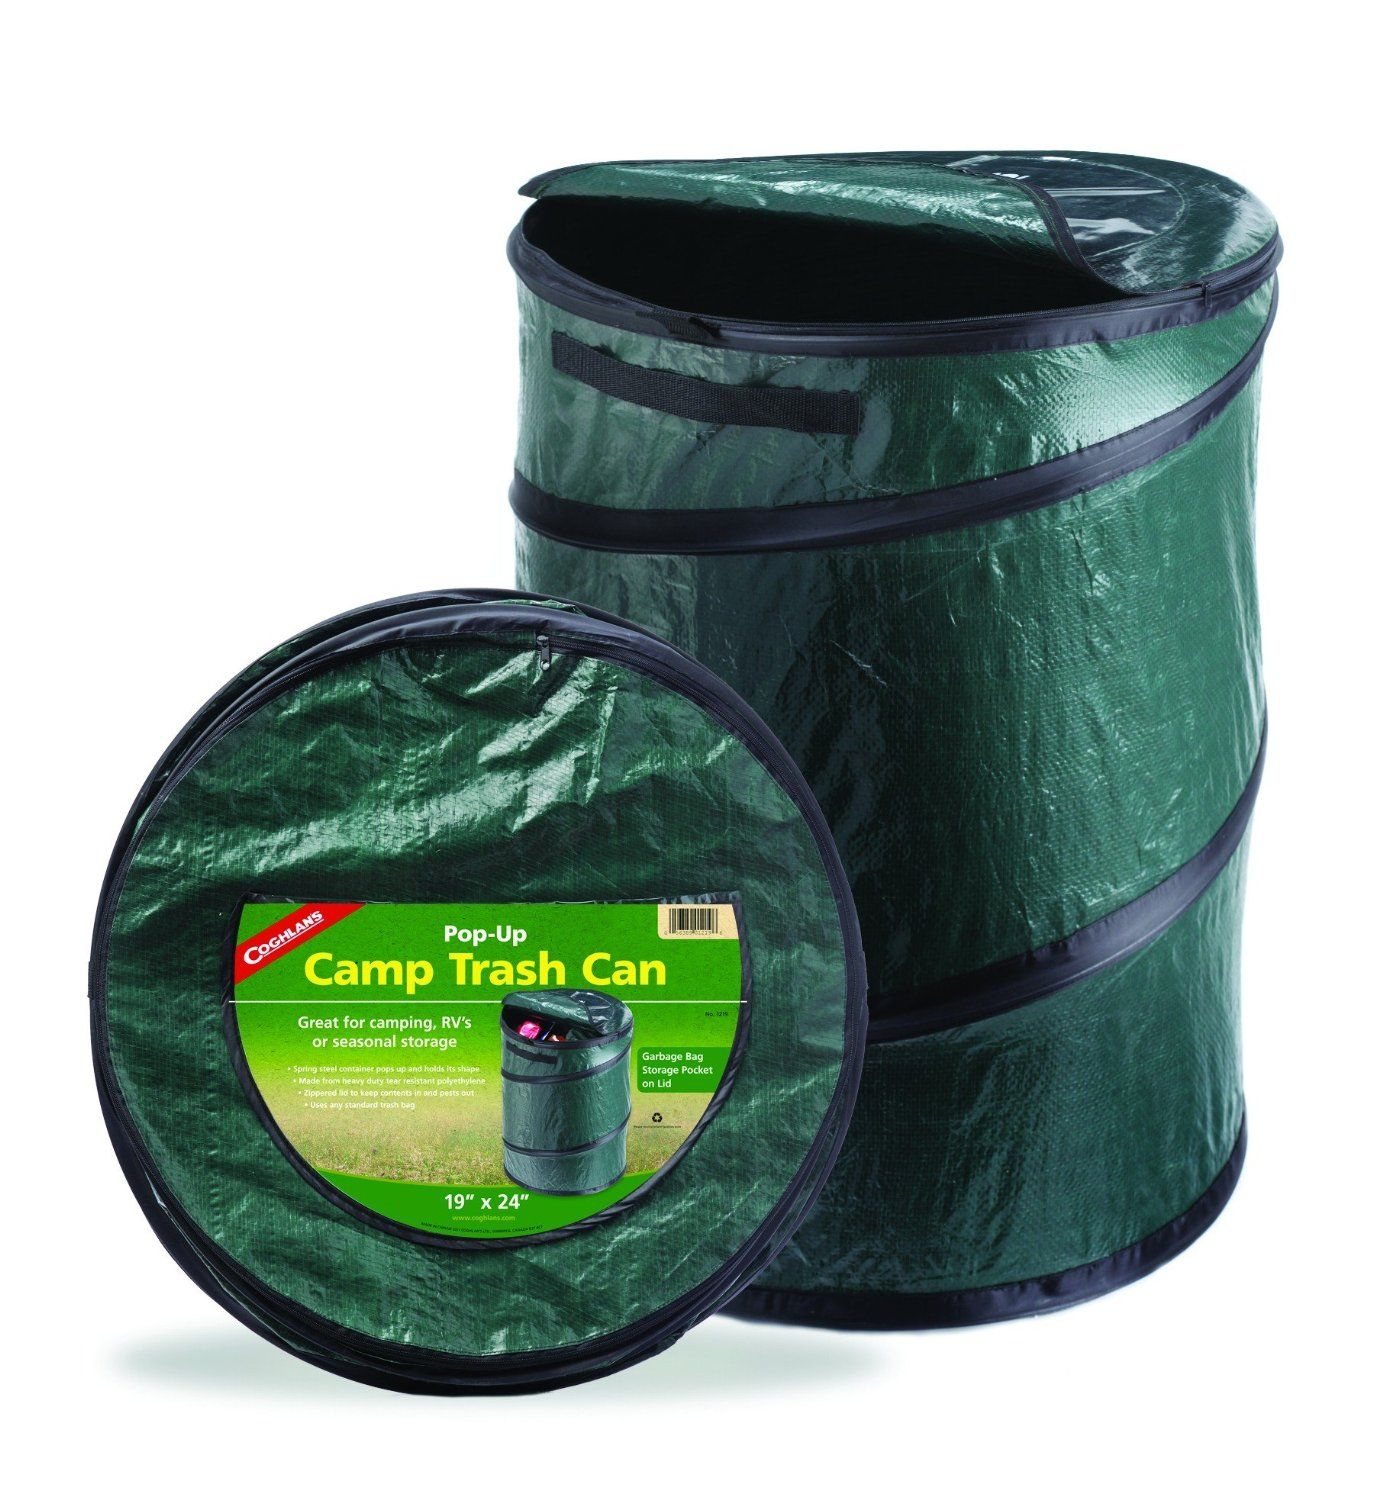 Amazon.com : Coghlans 1219 Camping Trash Can, Spring Loaded Pop Up